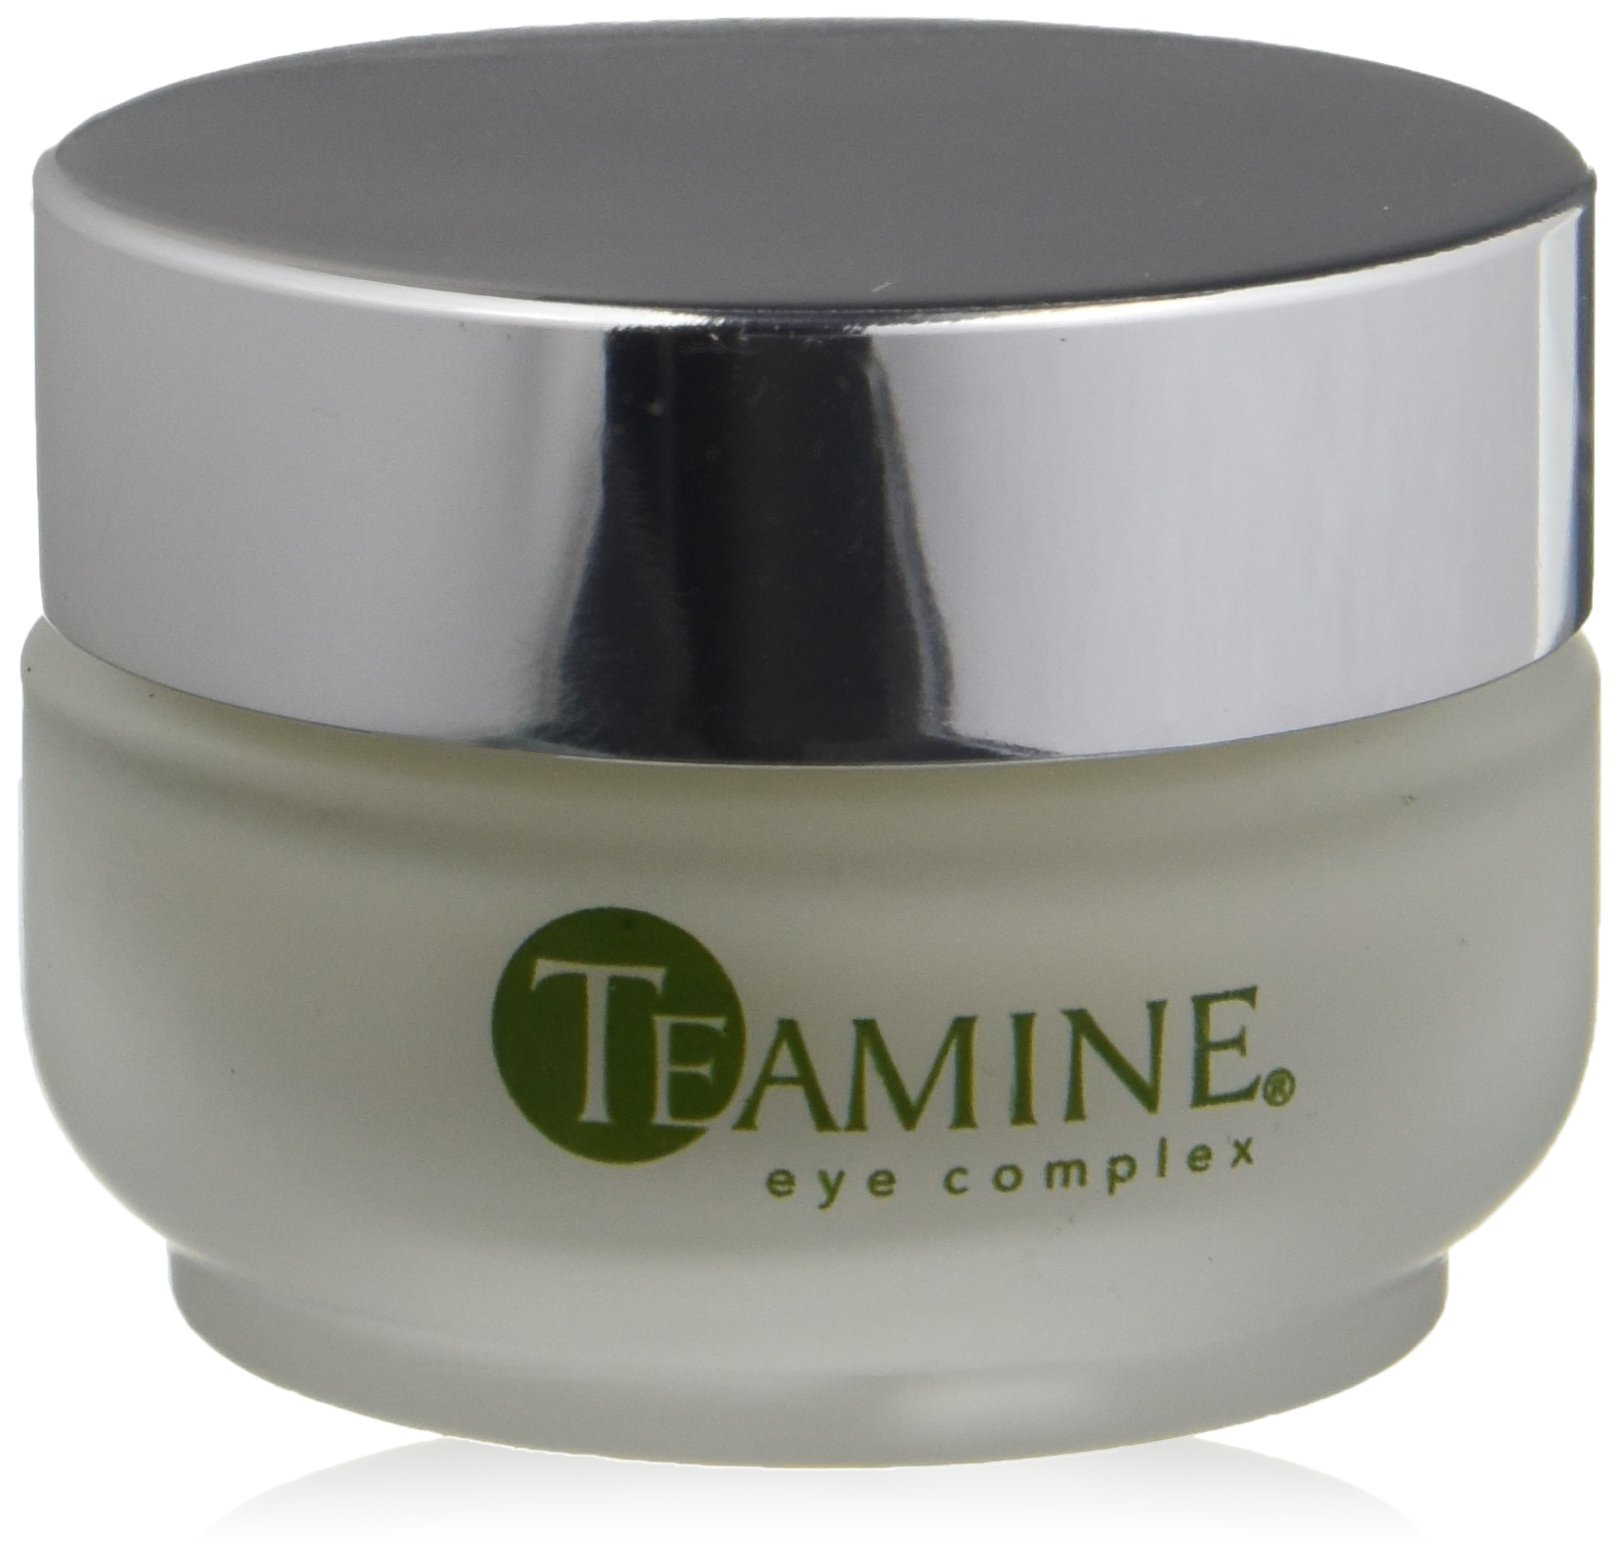 Revision Skincare Teamine Eye Complex, 0.5 Ounce